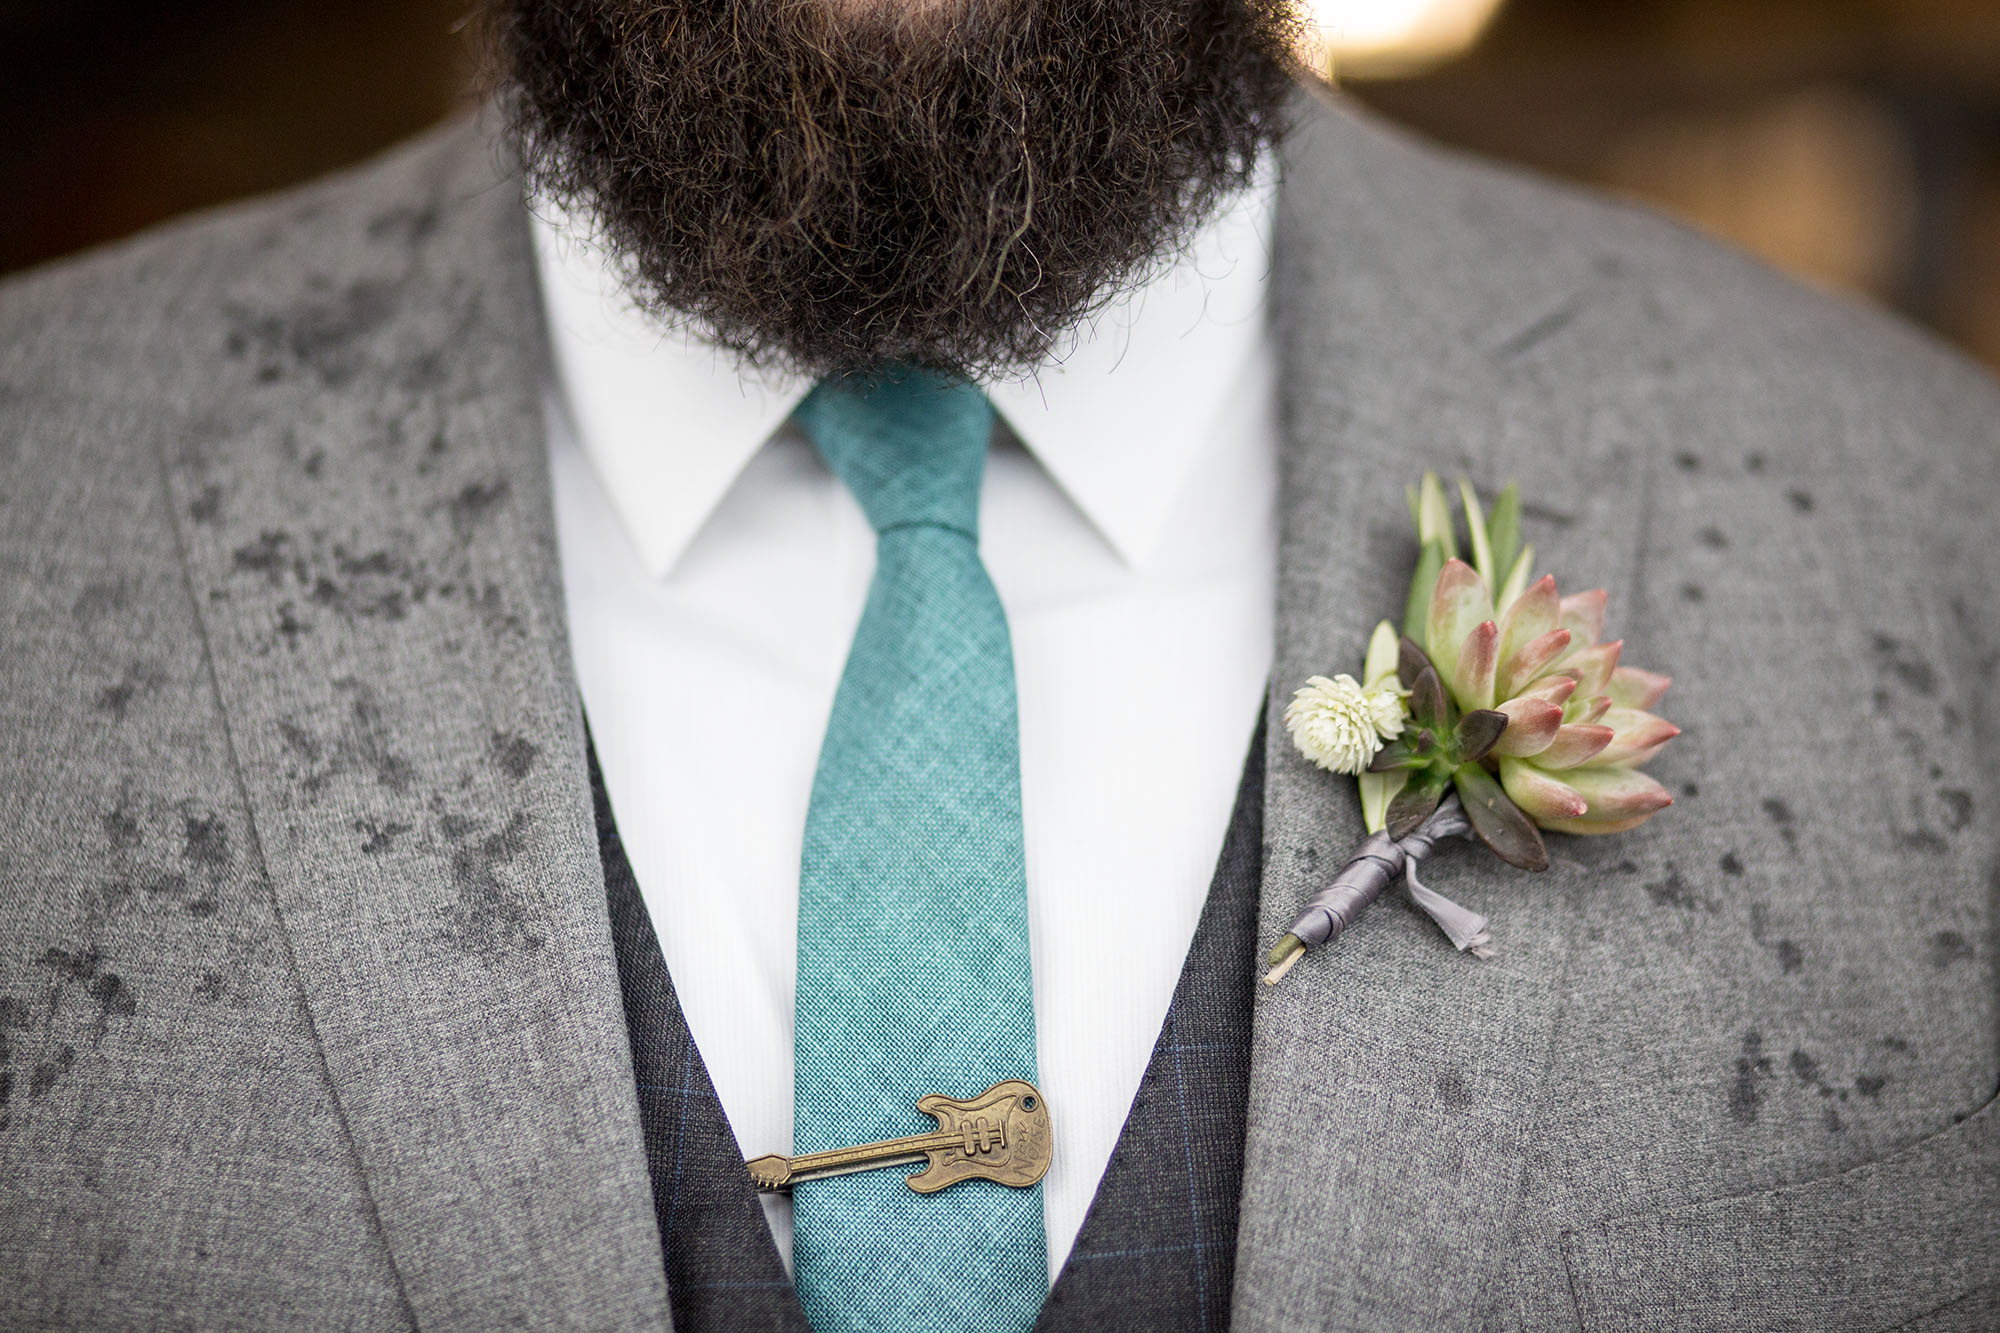 Accessories for the groom - like this awesome guitar tie clip and succulent boutonniere